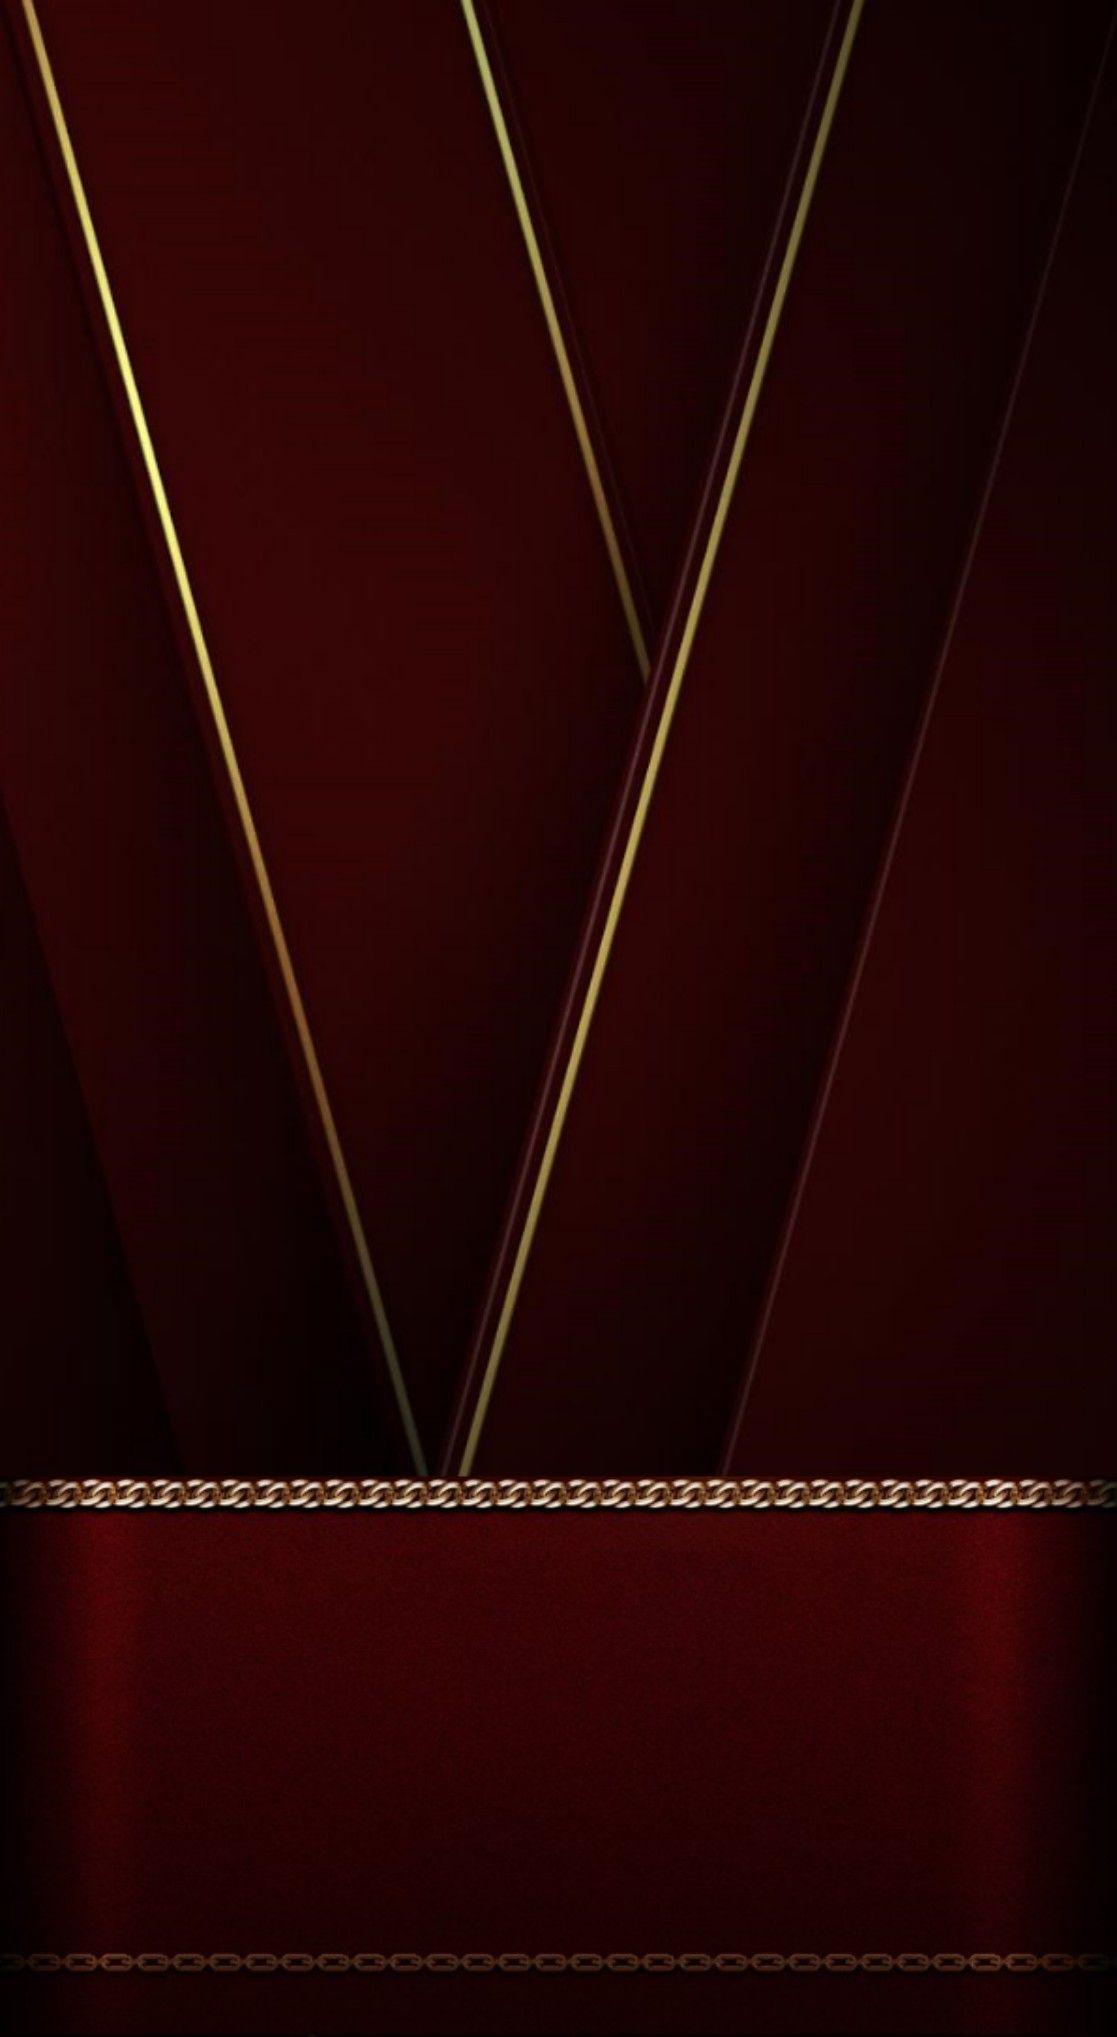 Burgundy with Gold Trim Wallpaper Gold wallpaper iphone